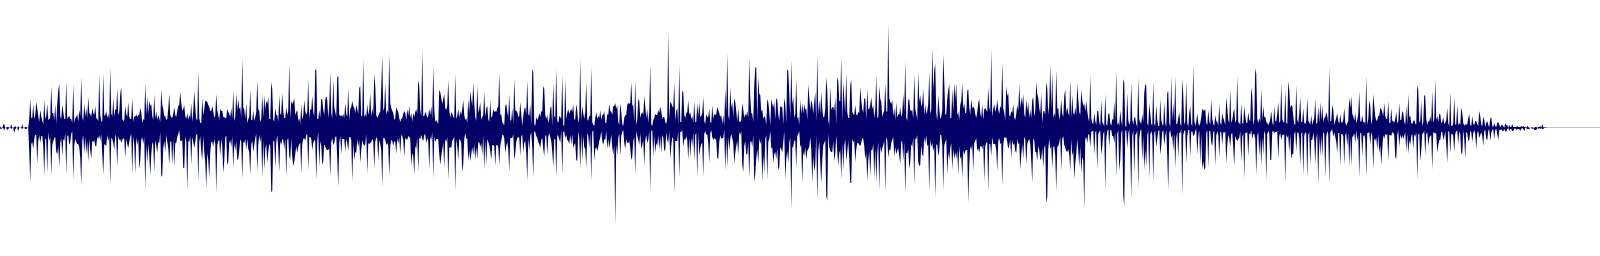 waveform of track #149911